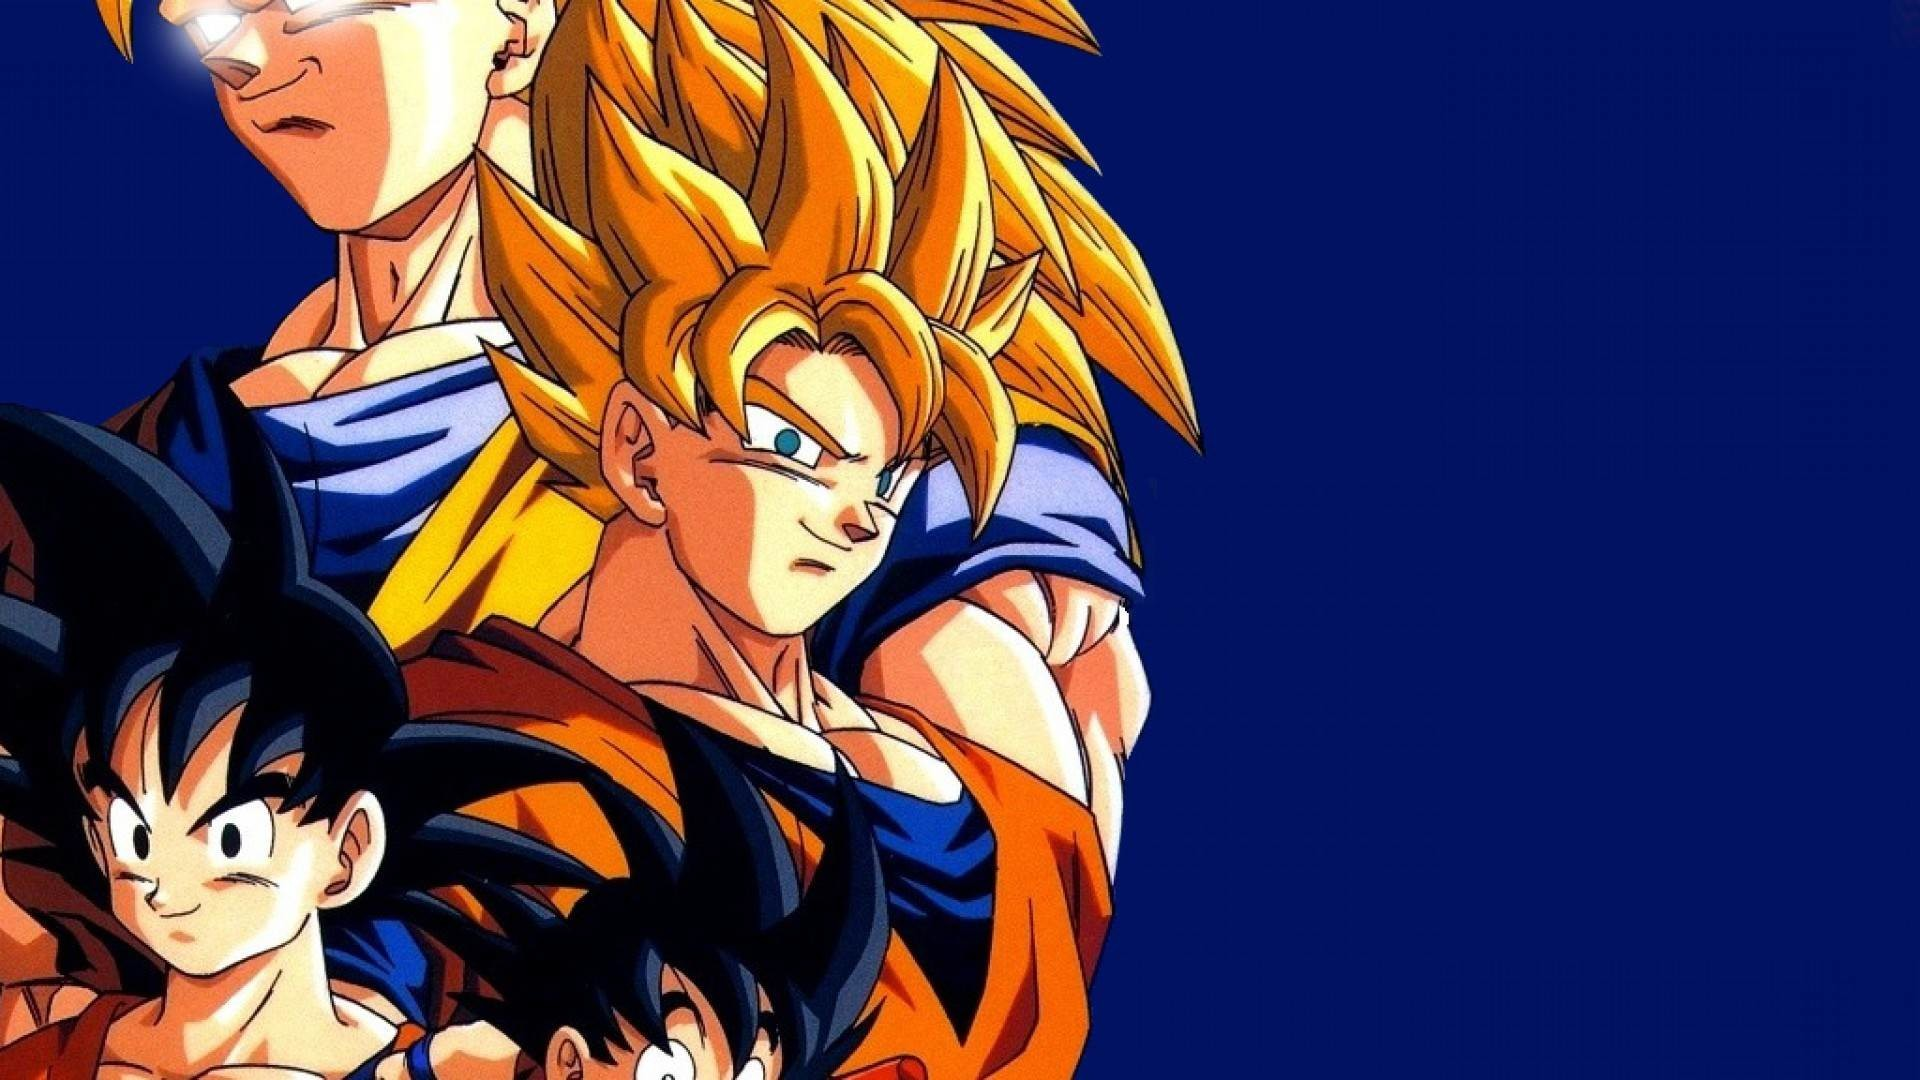 Super Saiyan God Hd Wallpaper 71 Images